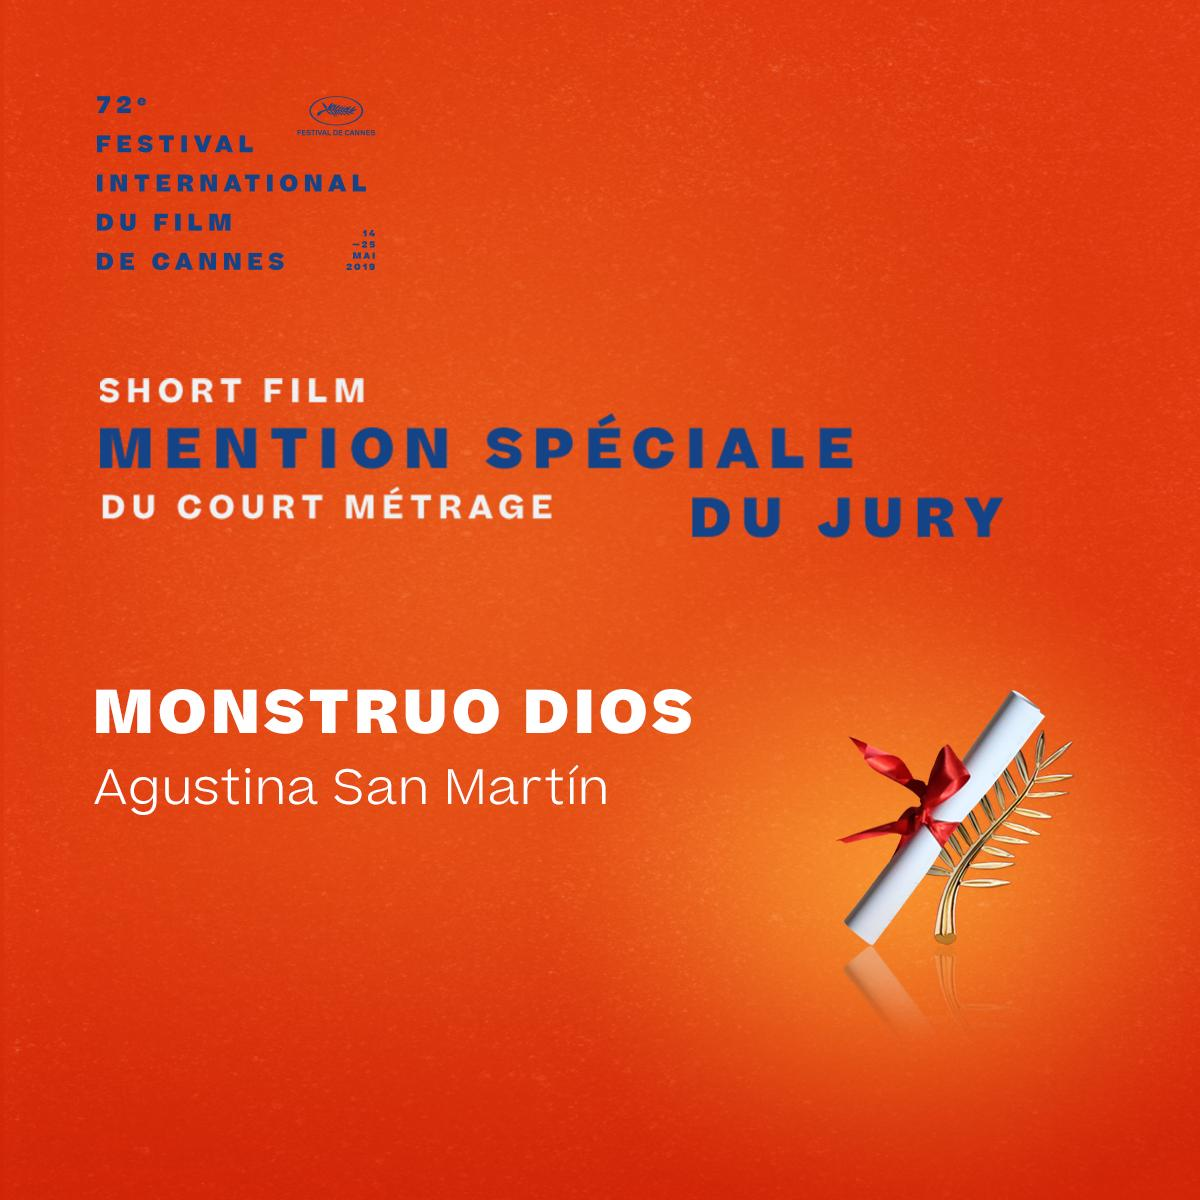 The Special Mention of the Jury for short film goes to… #MonstruoDios by Agustina San Martín #Cannes2019 #Awards https://t.co/OJQNcBQ5iE